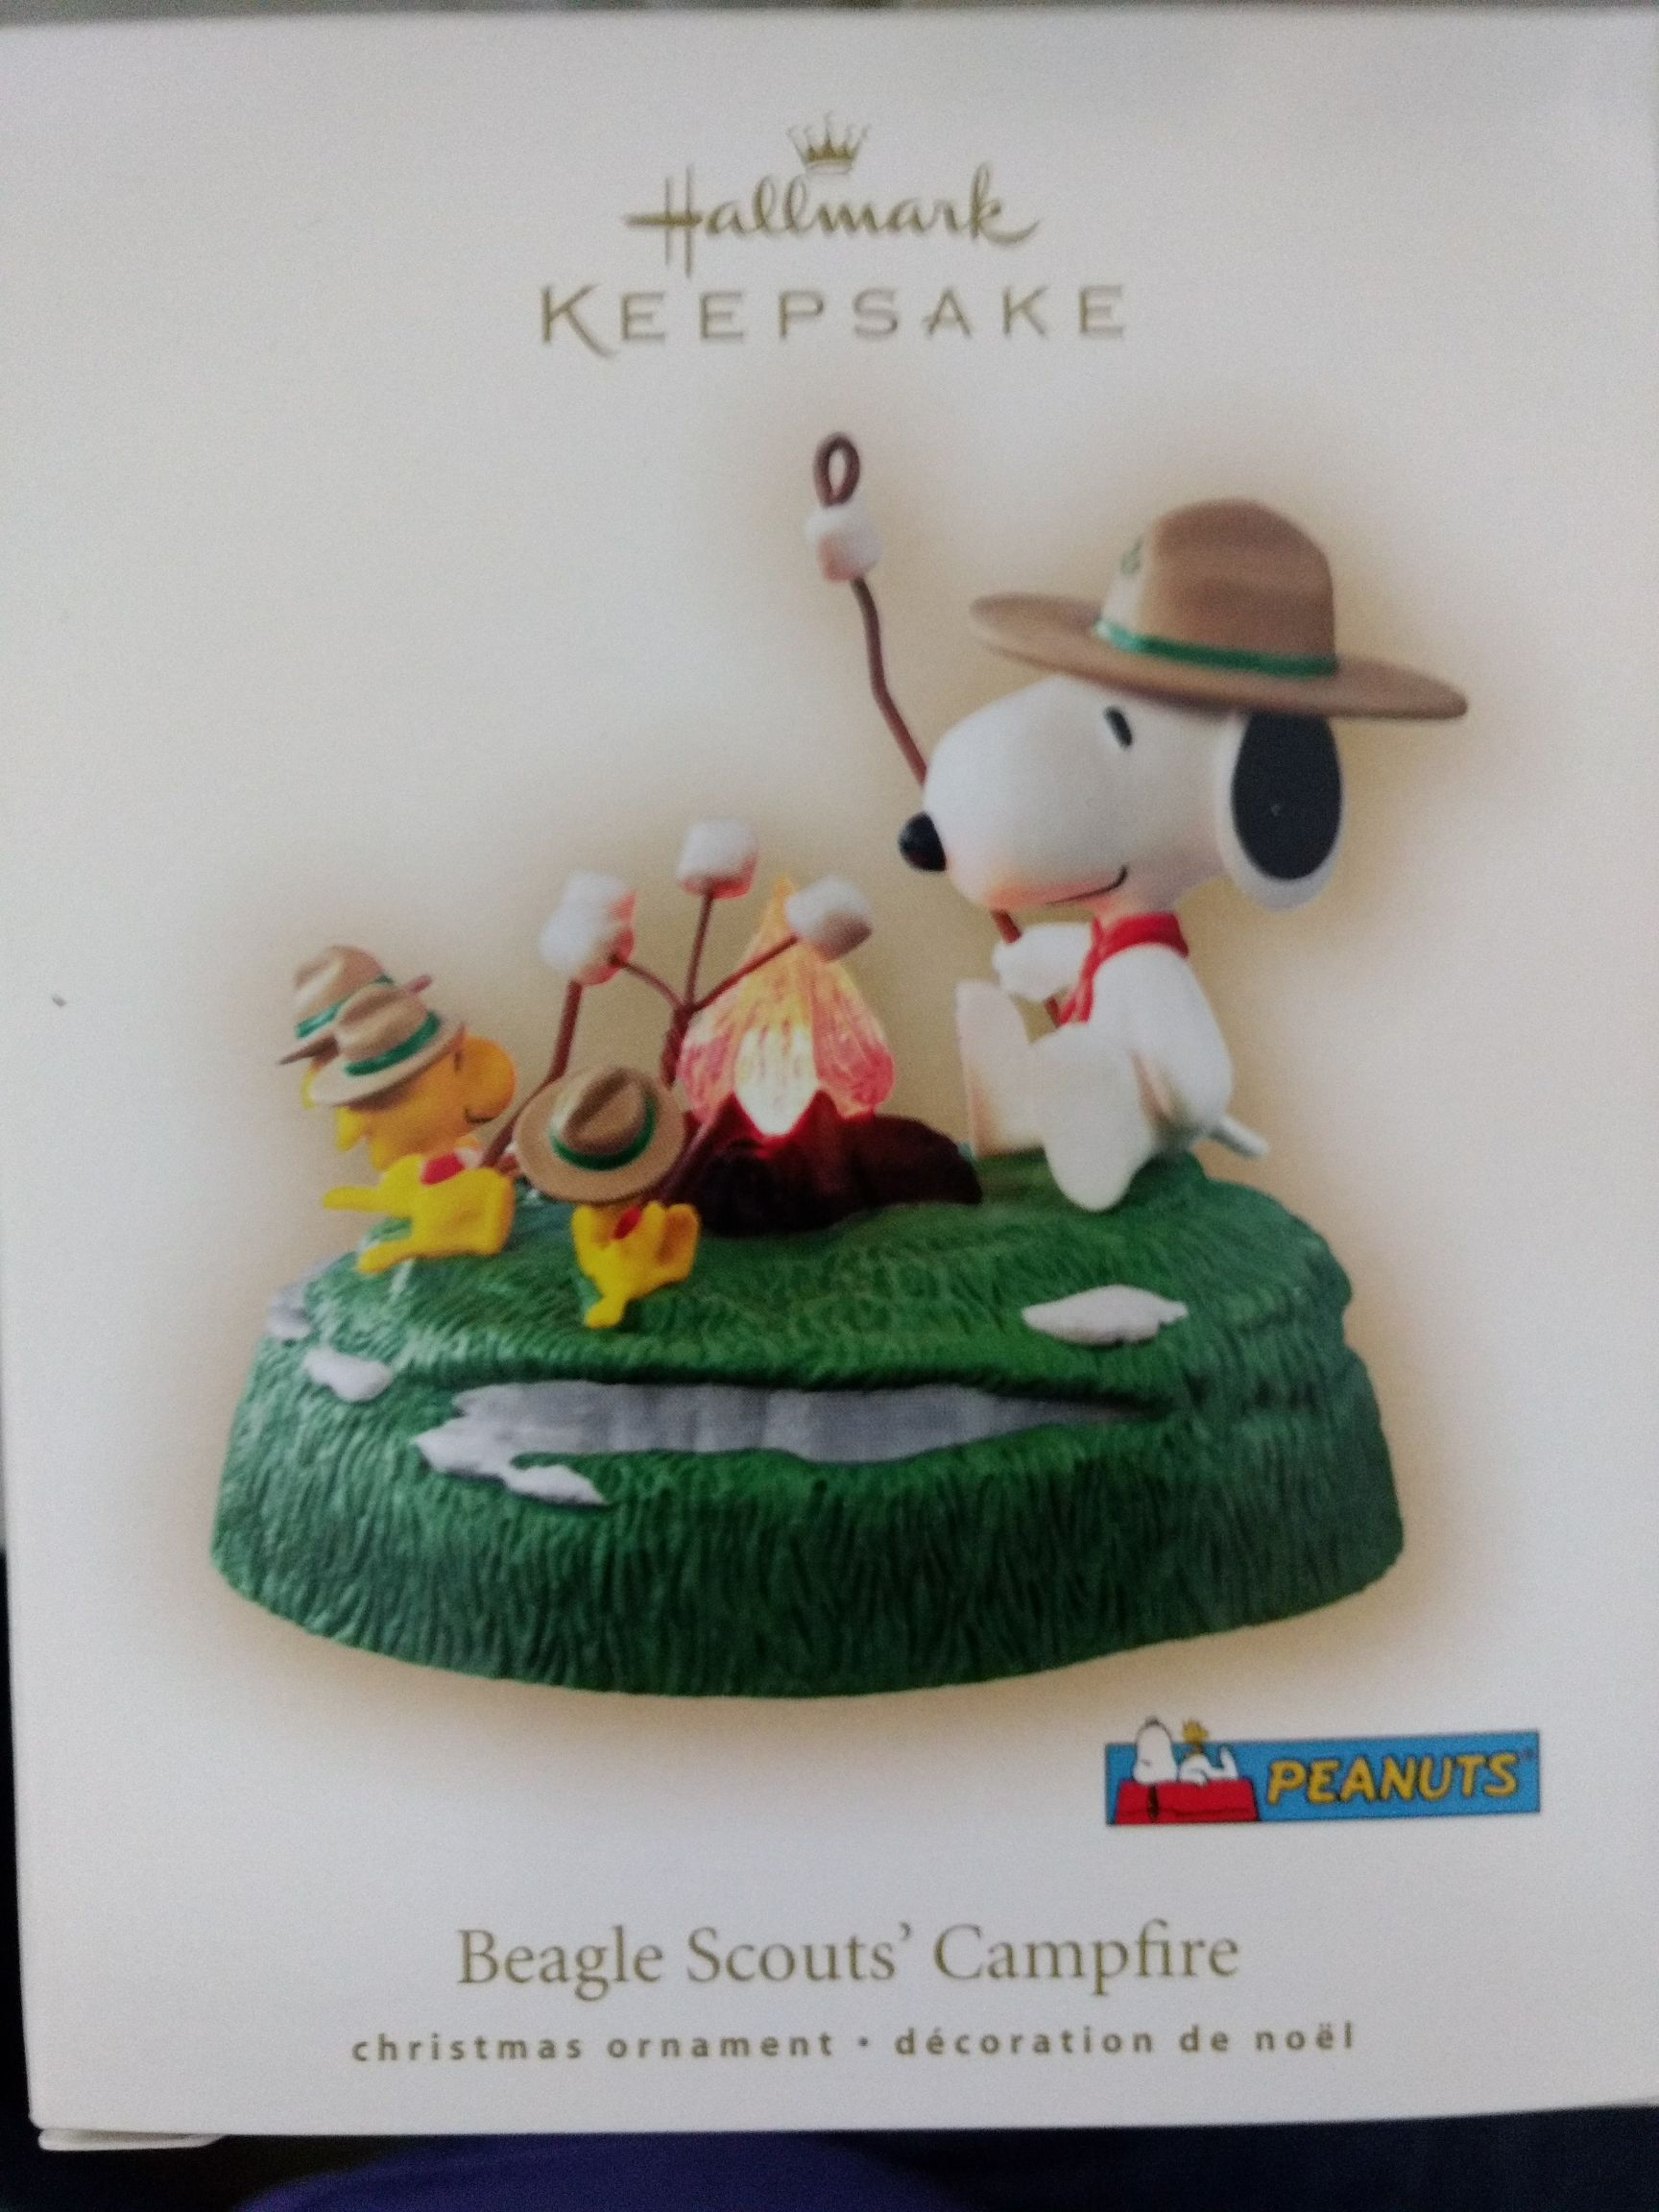 Beagle Scouts' Campfire Ornament - Hallmark (2007) front image (front cover)